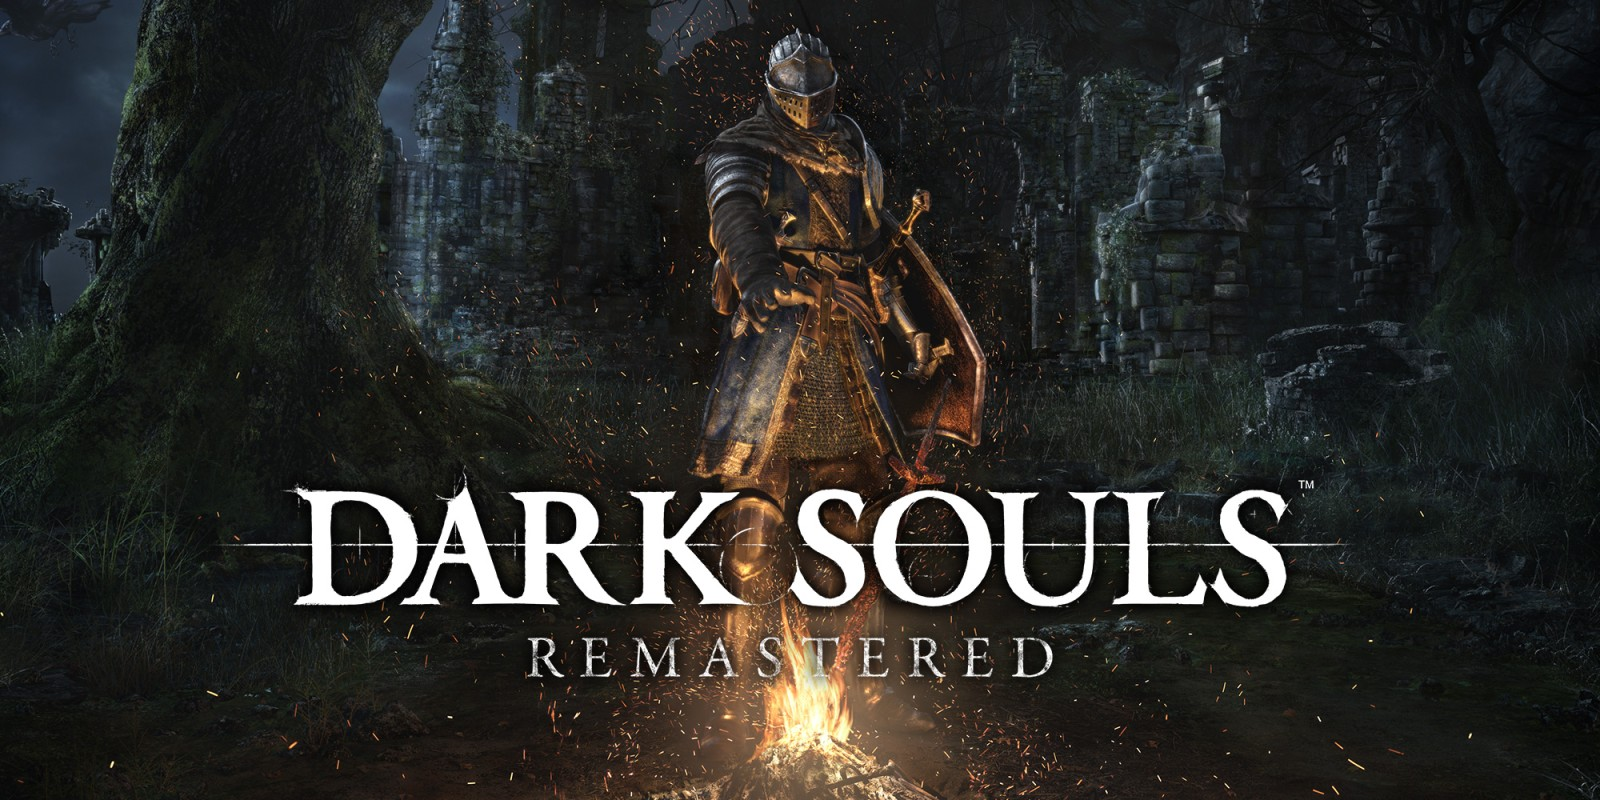 Dark Souls Remastered será anunciado hoje para Switch — RUMOR